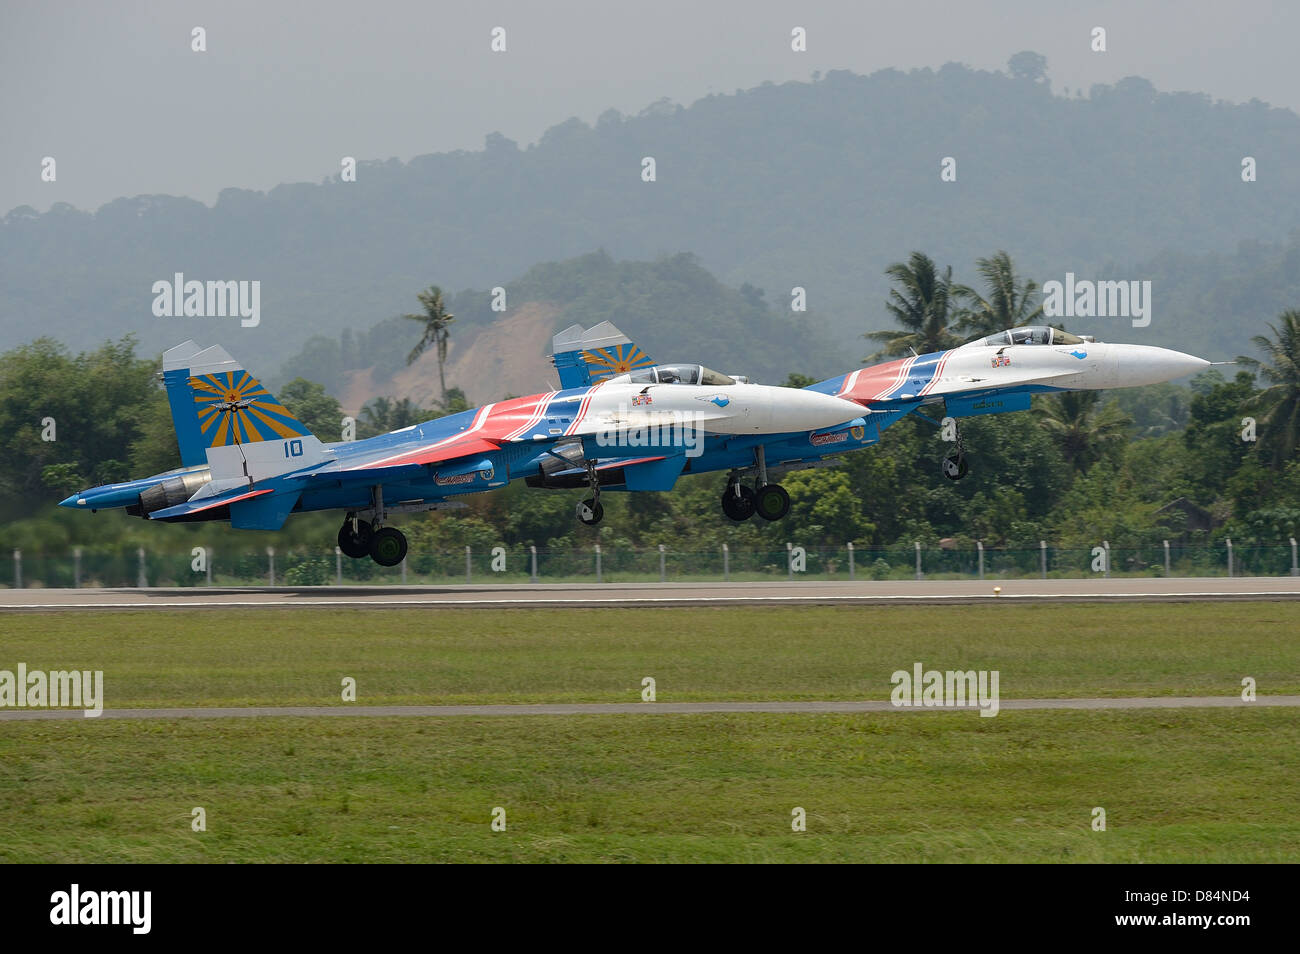 Two Sukhoi Su-27 Flanker of the Russian Knights aerobatic team taking off. - Stock Image